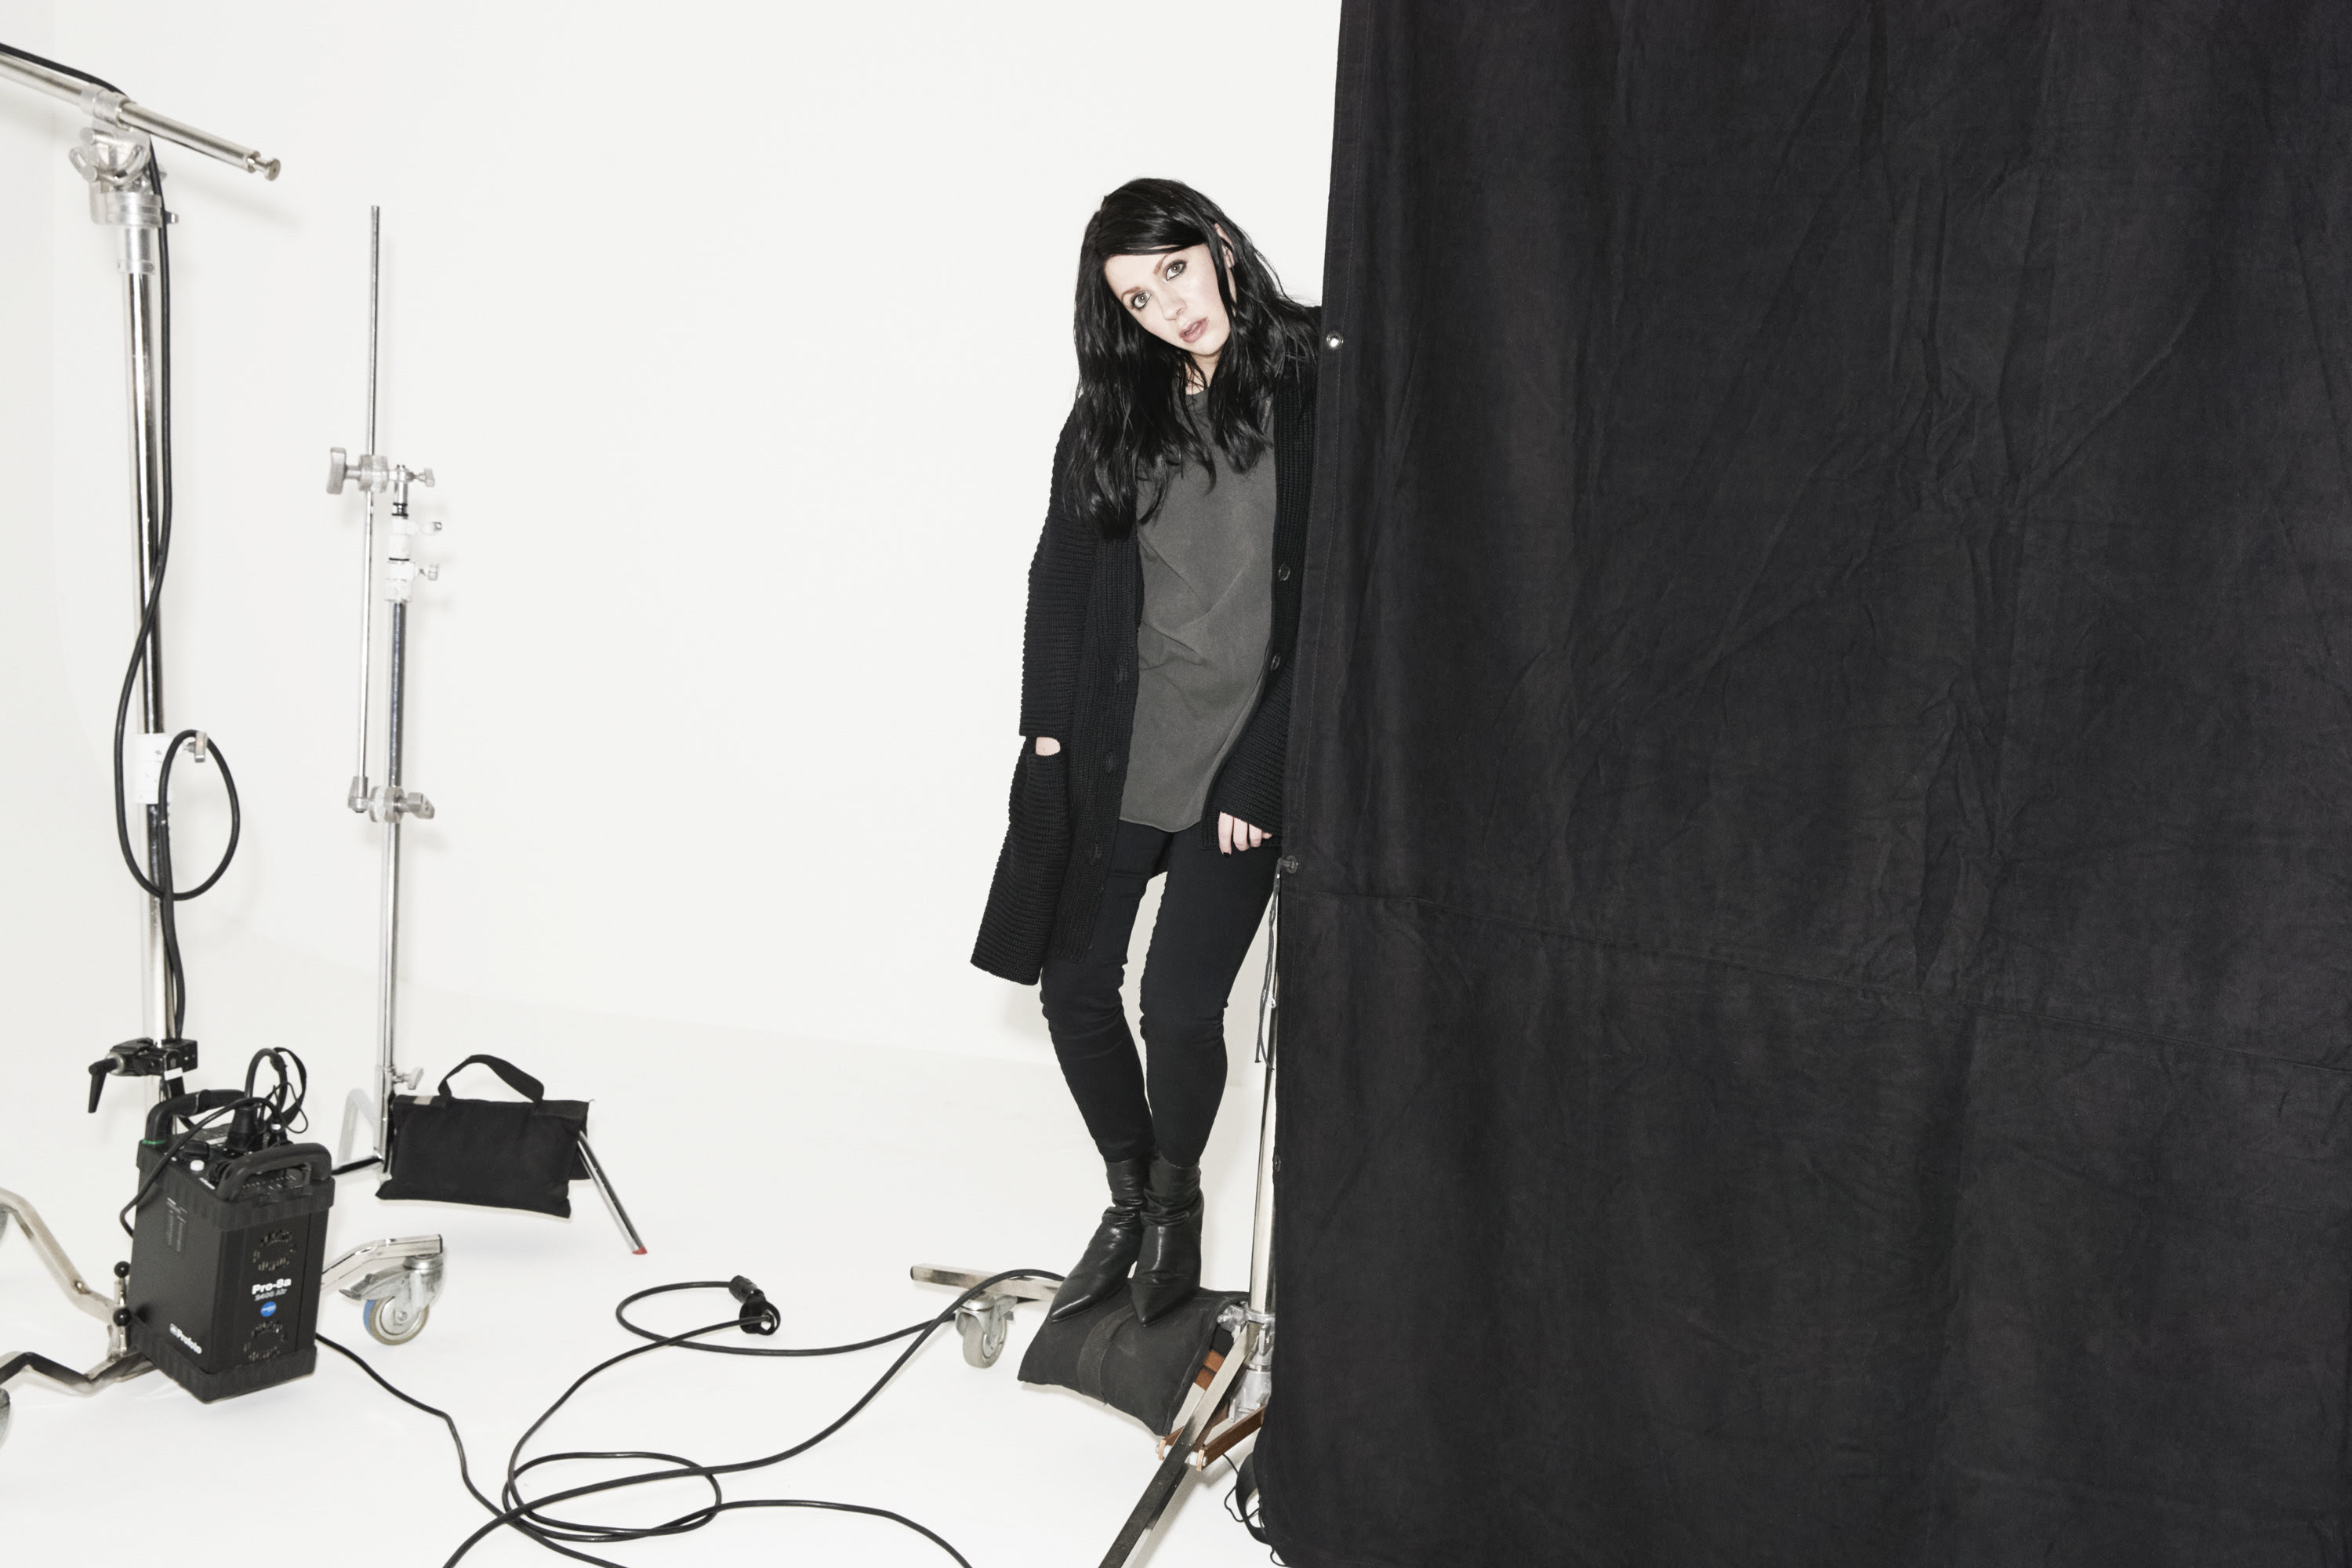 K.Flay Releases \u201cRun For Your Life\u201d and Announces New Tour Dates ...